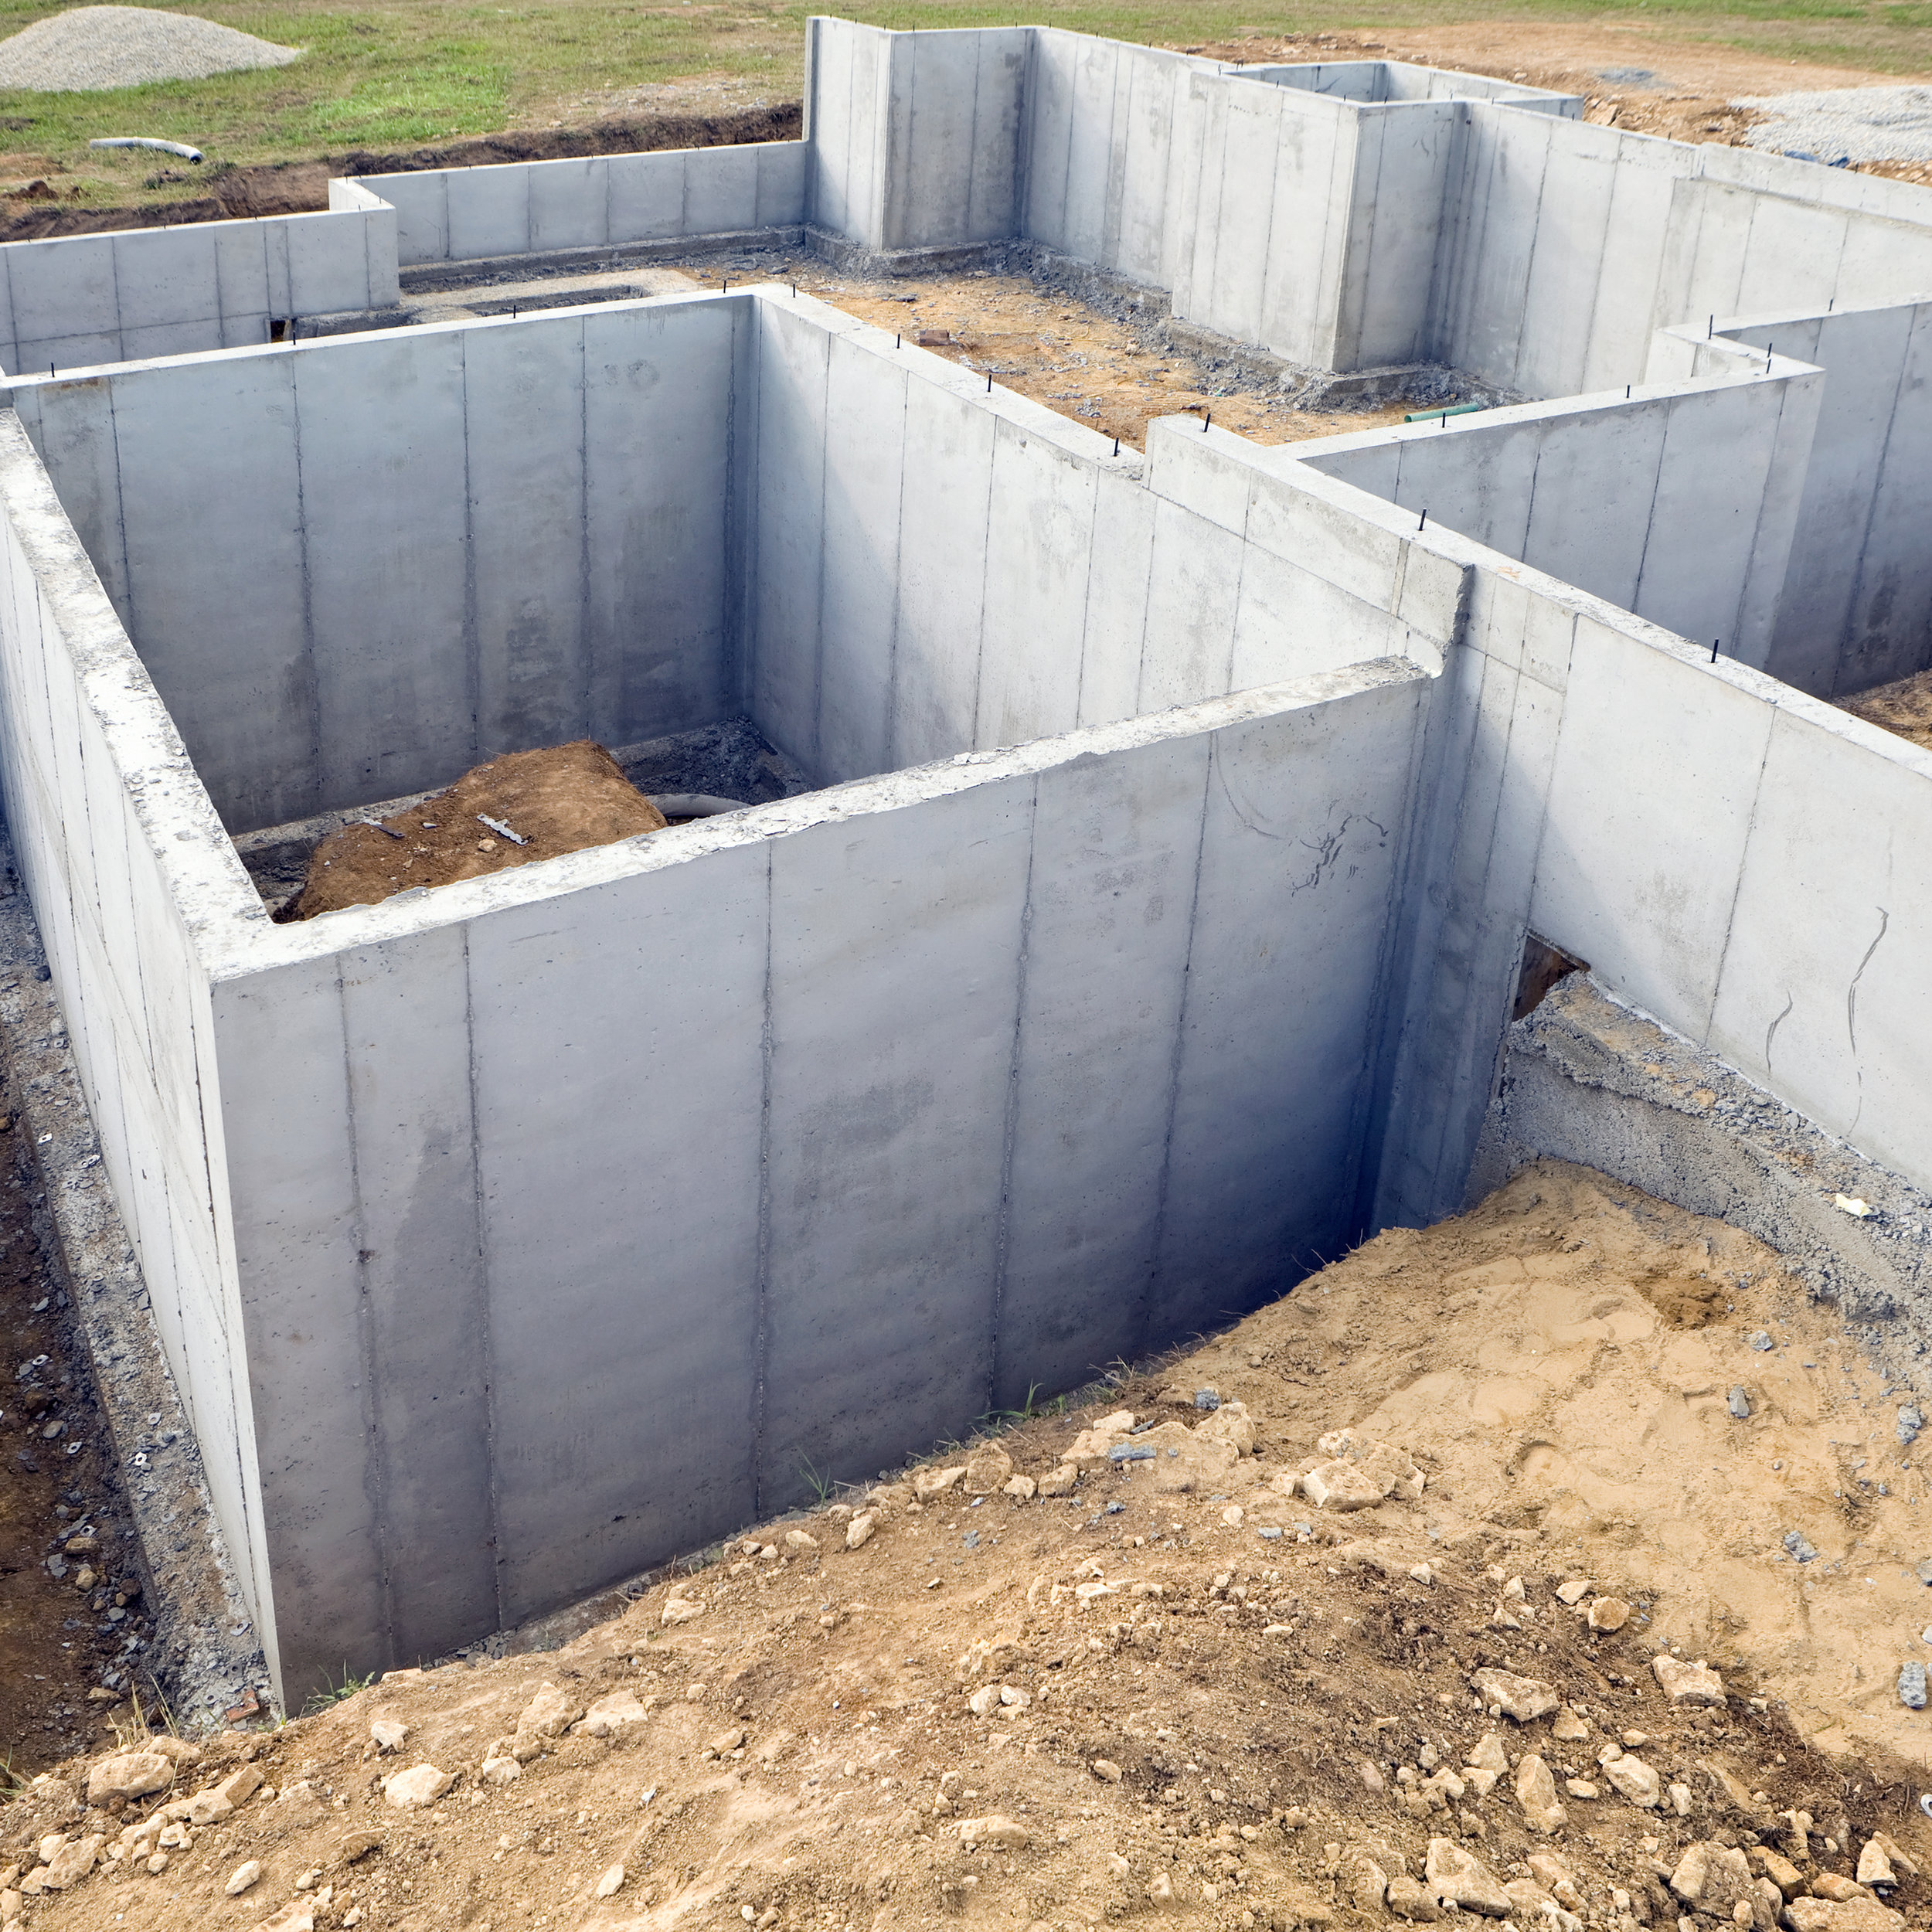 Foundation - Giesbrecht Buildings Inc. is very proud of our foundation work. We always strive to be perfectly accurate and to exceed industry standards.We pay particular attention to the MPa (Megapascal) of the concrete, which measures its compressive strength and how much pressure can be applied before it cracks or fails.If better flow is required during placement, we always add chemical additives instead of industry standard water. Water is known to decrease the durability of concrete over time.Although chemicals are slightly more expensive, they ensure the proper concrete strength recommended by engineers.